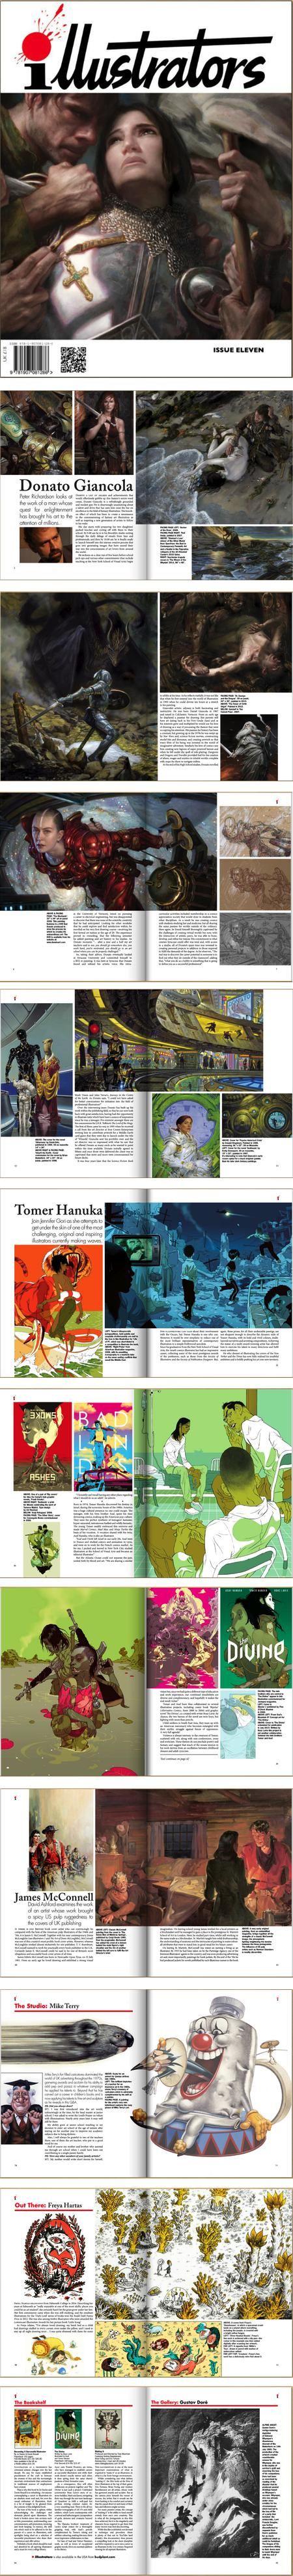 Illustrators Magazine Issue Eleven; Donato Giancola, Tomer Hanuka, Kames McConnell, Mike Terry, Freya Hartas, Gustave Dore